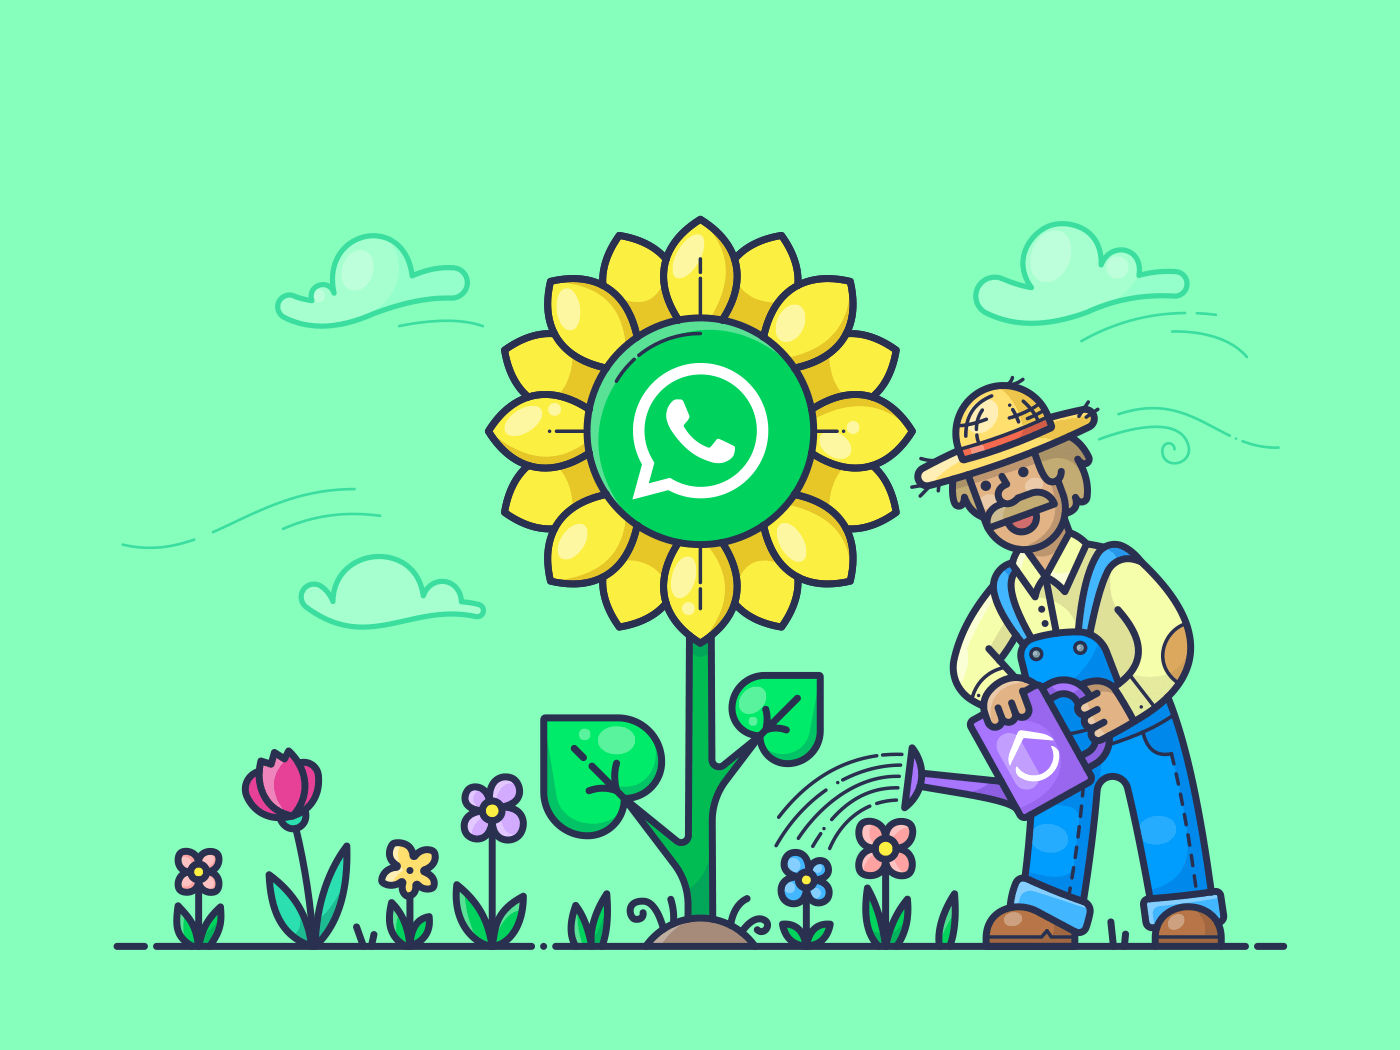 whats app growth